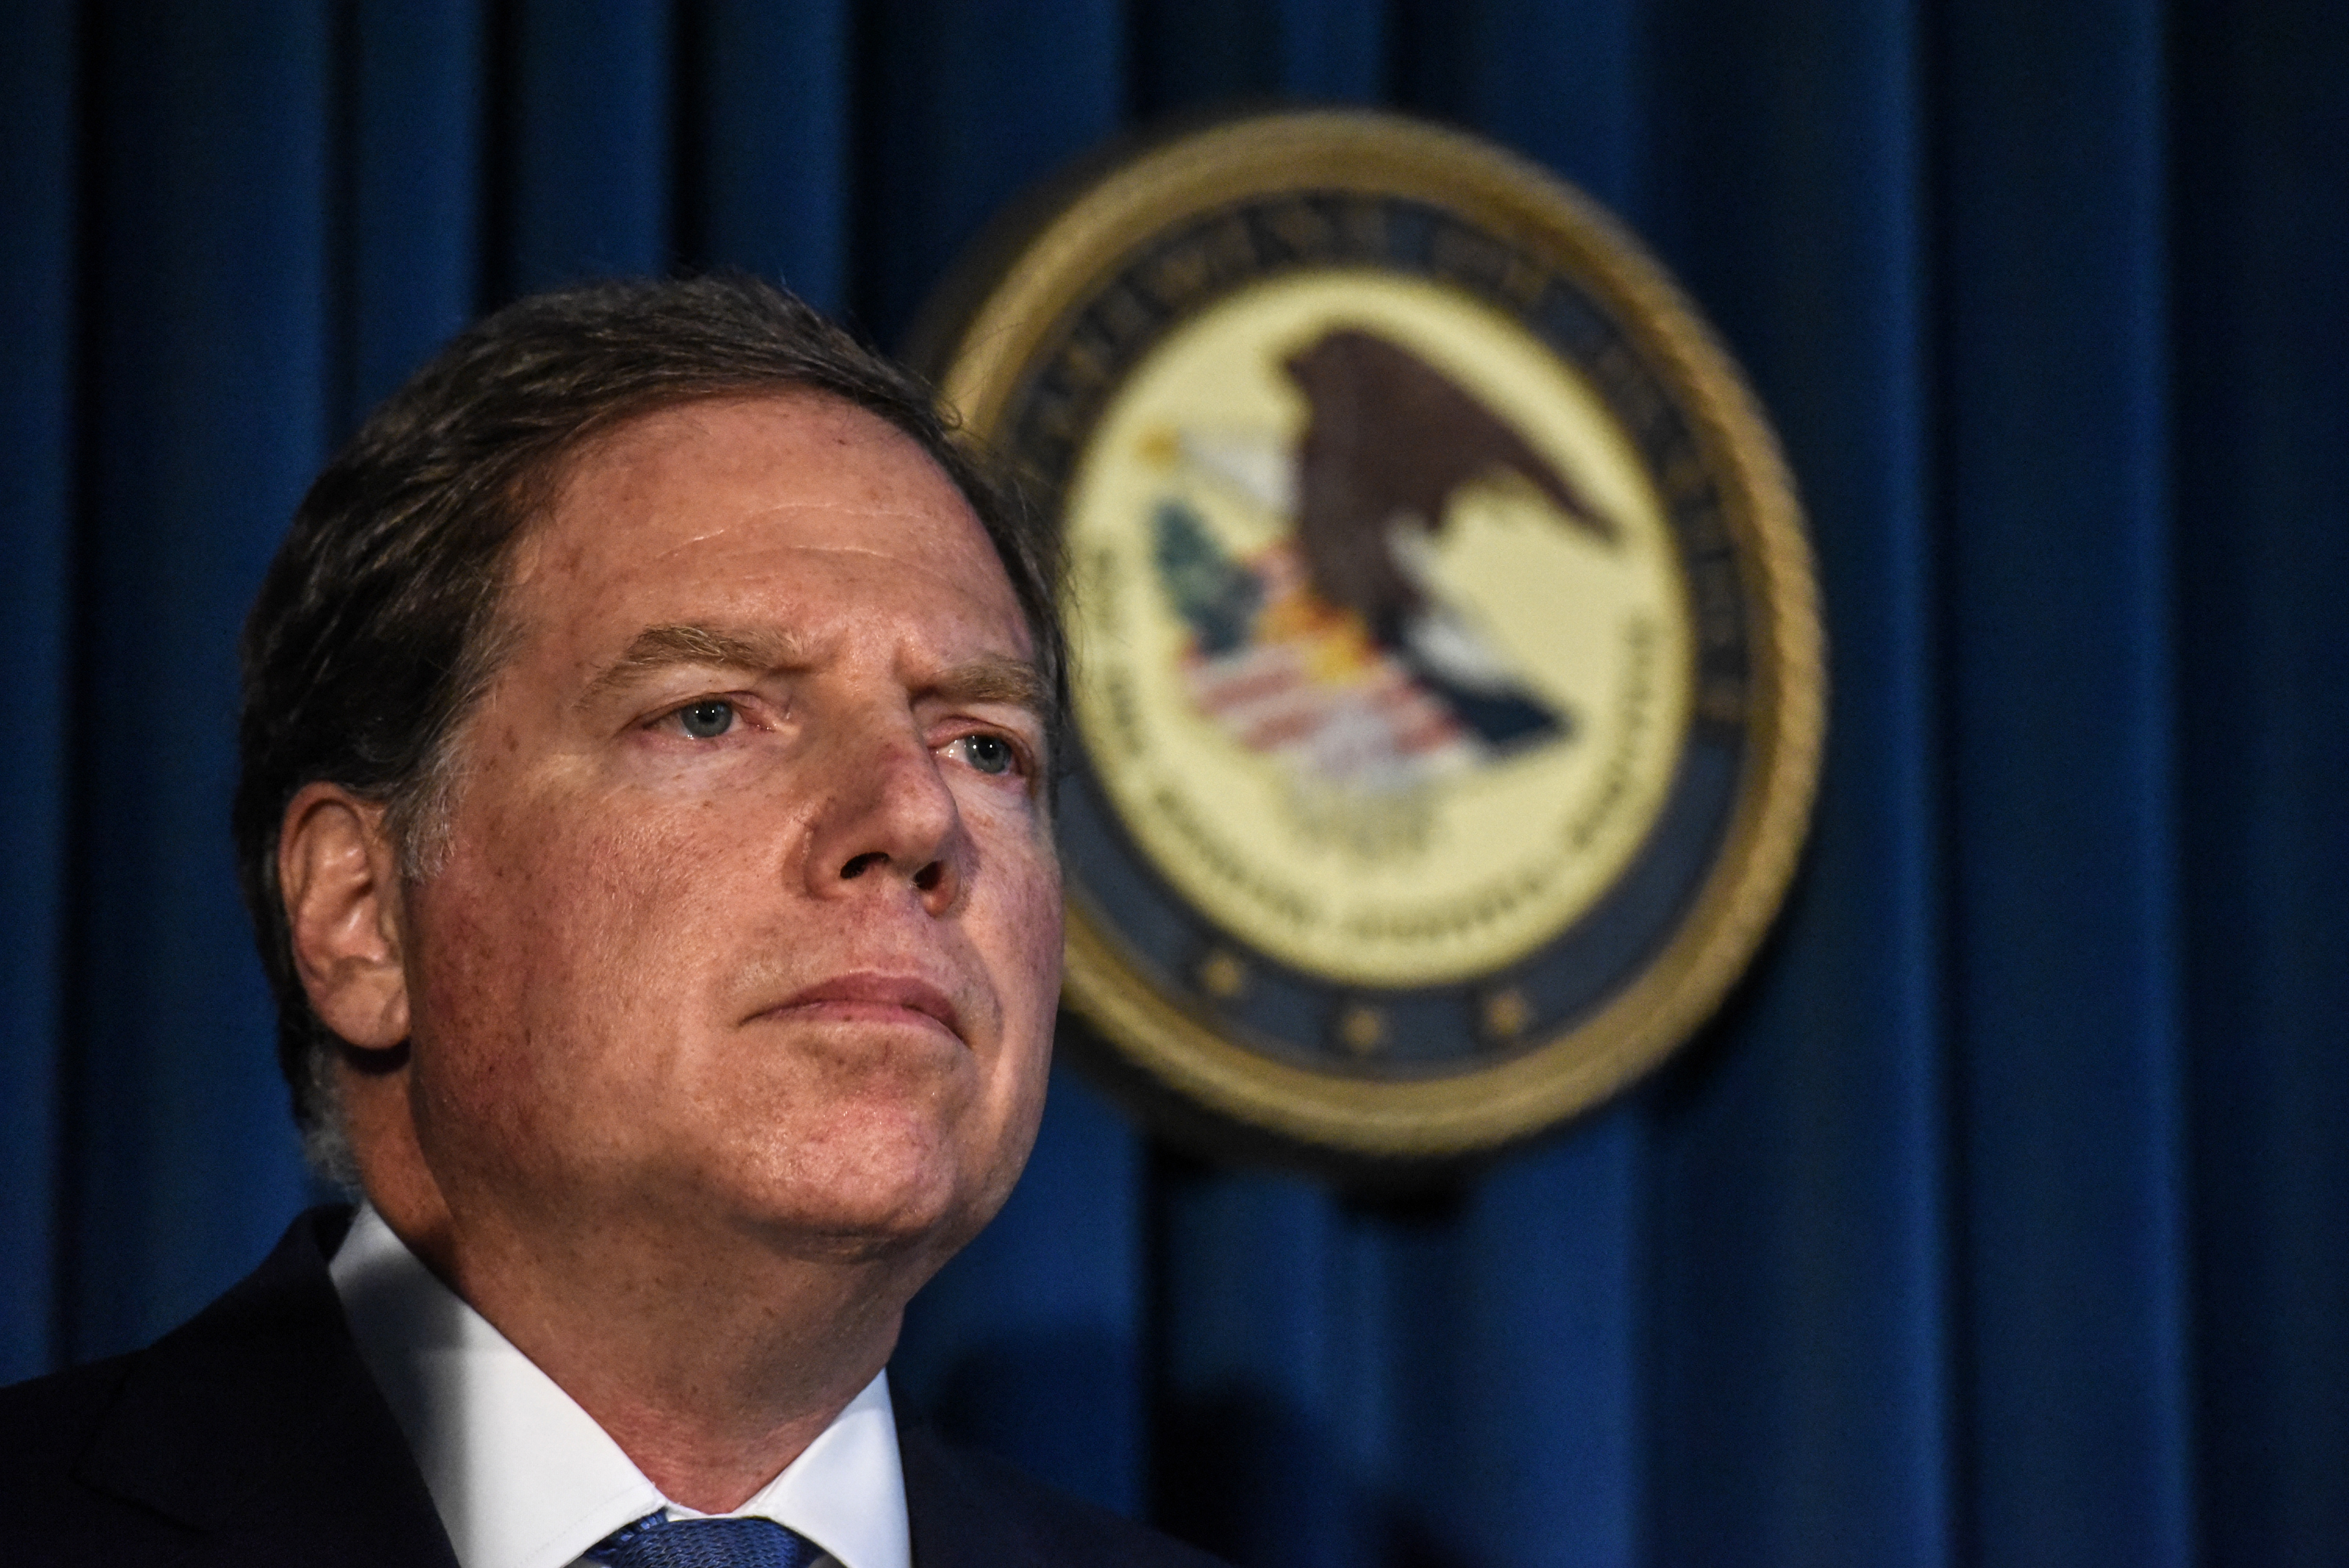 US Attorney for the Southern District of New York Geoffrey Berman announces charges against Jeffery Epstein on July 8, 2019 in New York City. (Photo by Stephanie Keith/Getty Images)